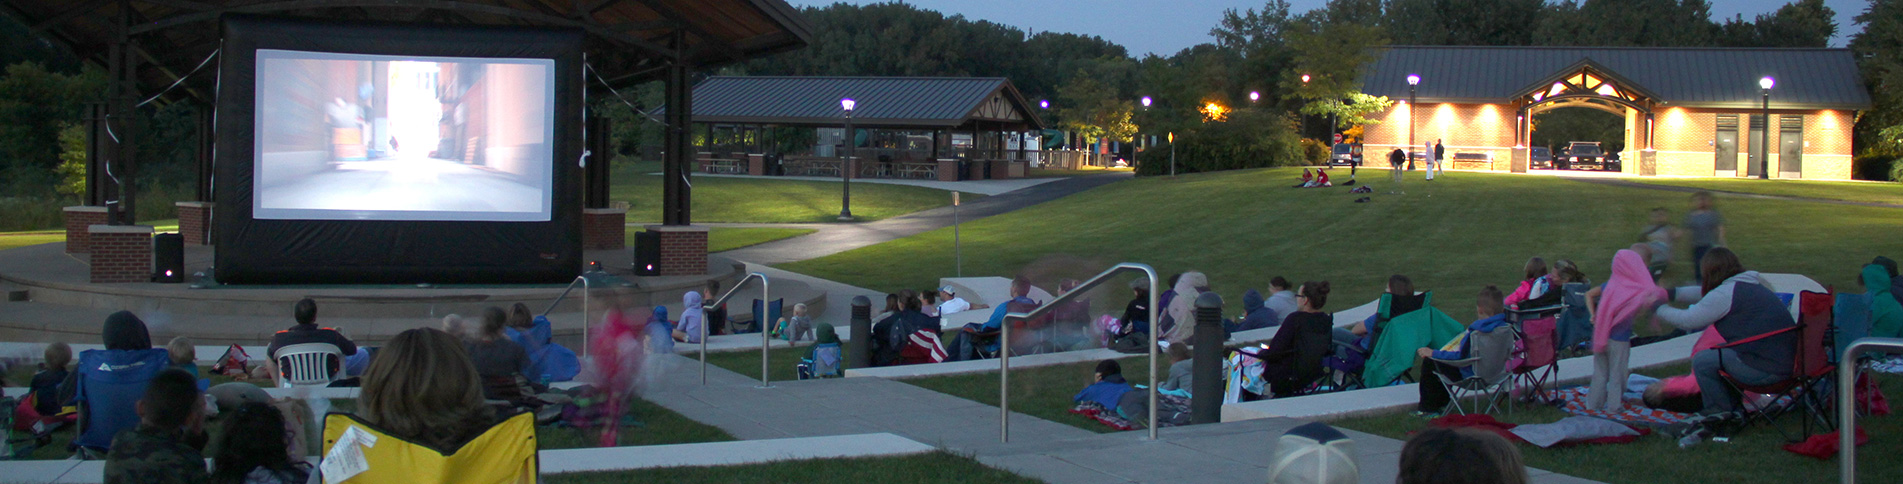 Crowds watch a movie at Huber Park